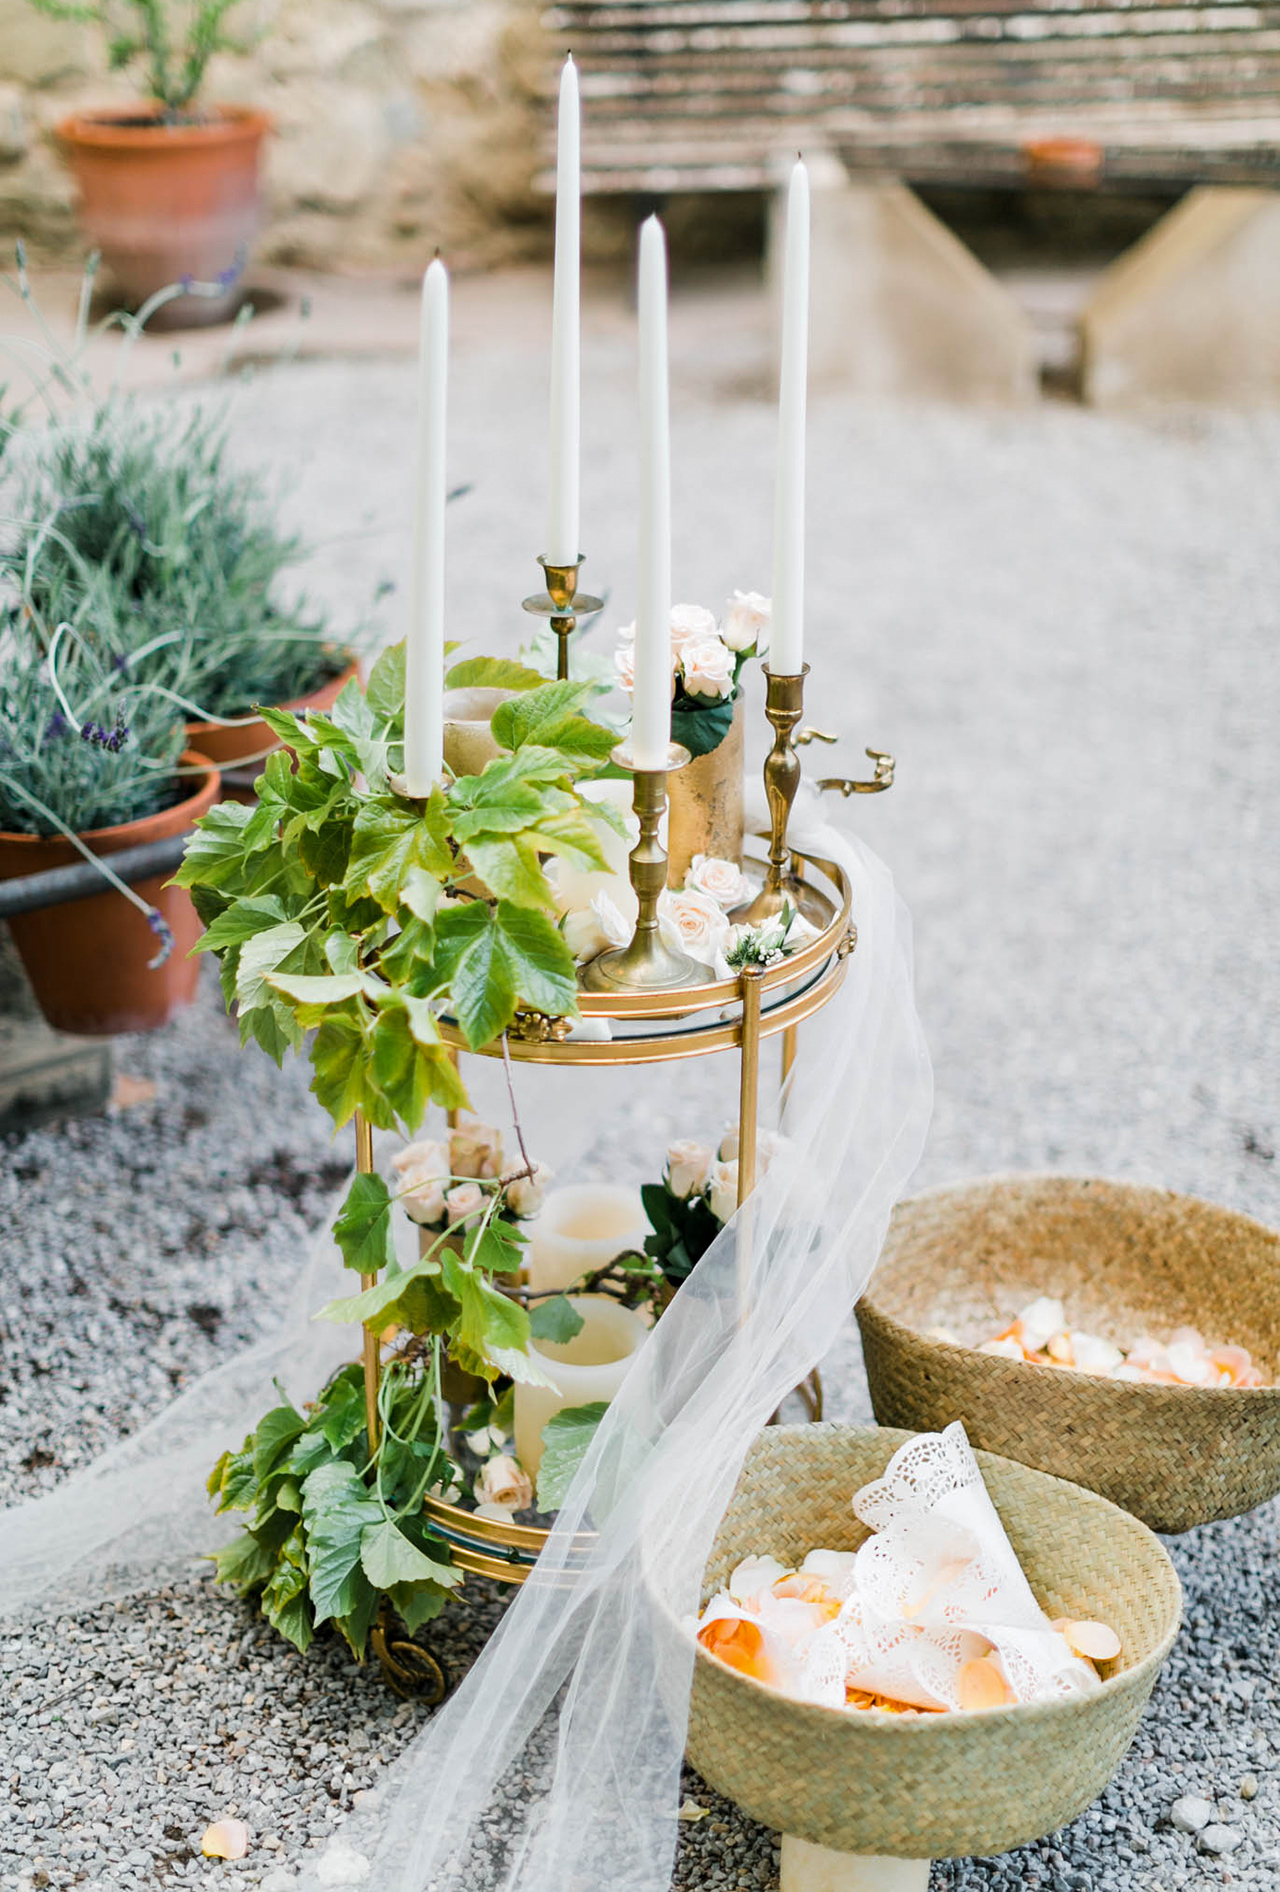 wetting petal baskets small table of greenery and candles